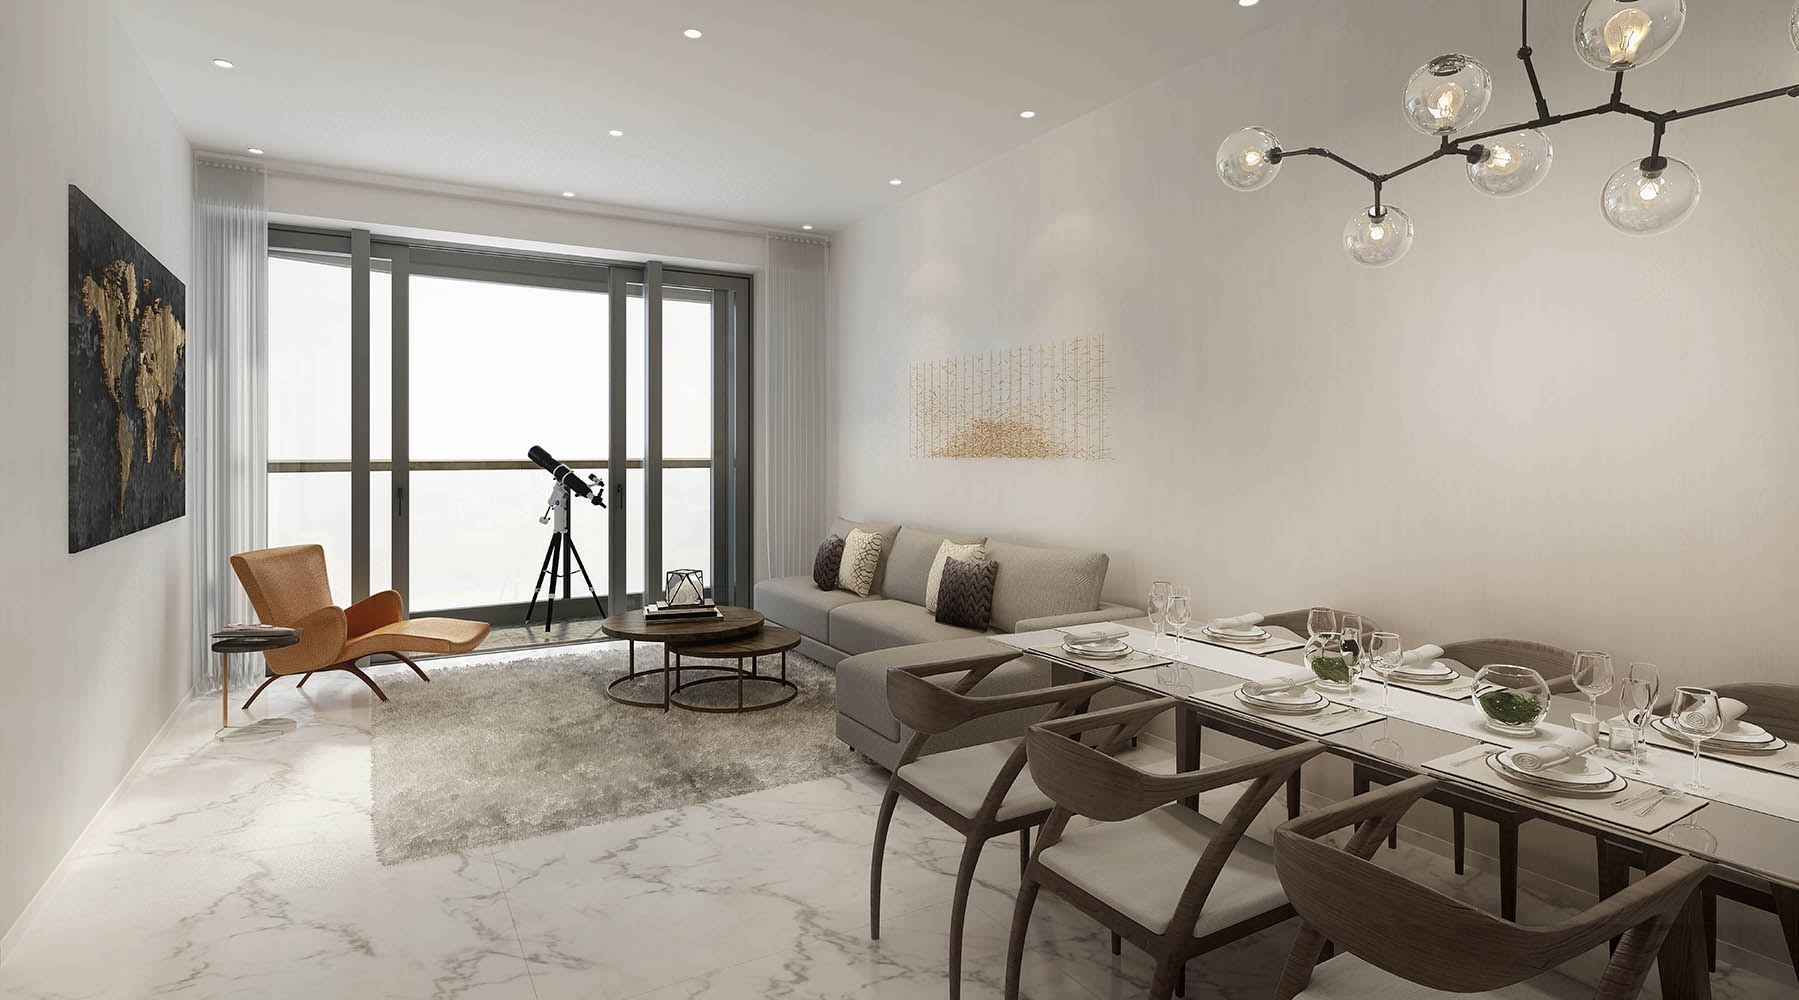 New World Development launched the remaining 64 units from The Pavilia Bay with 2% to 3% price up. Image from The Pavilia Bay Website.